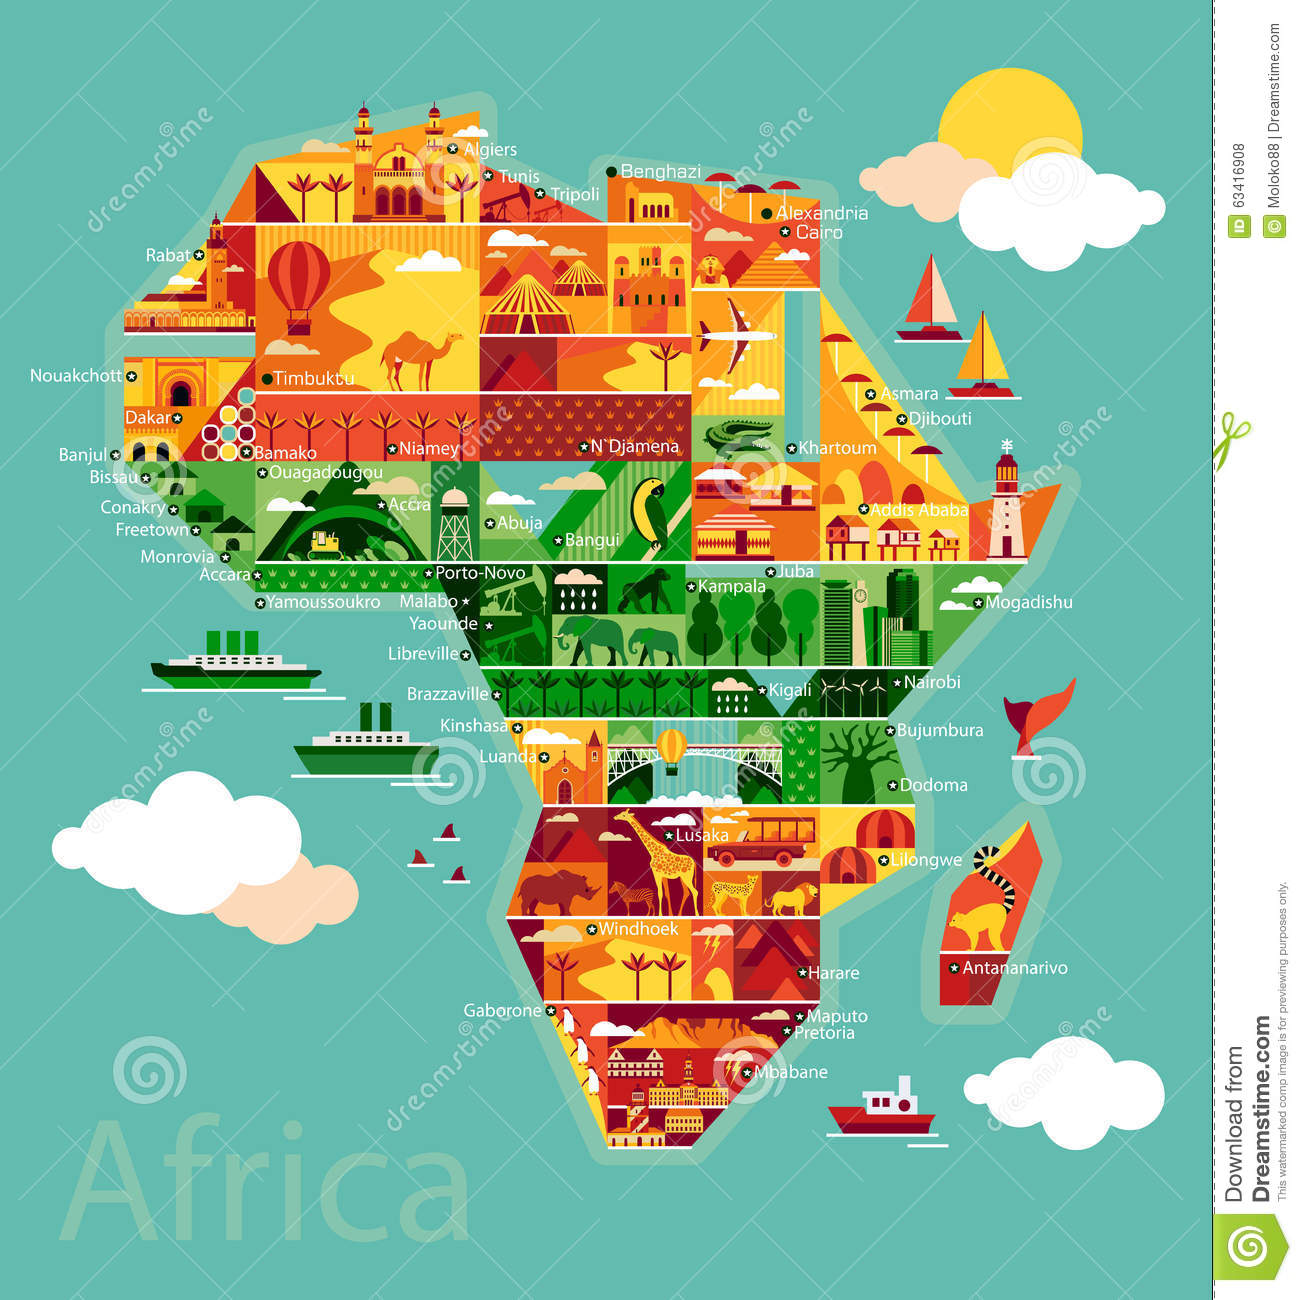 Cartoon map of Africa stock vector. Illustration of camels ... on map of sz, map of sh, map of ei, map of mh, map of gh, map of ke, map of re, map of air force bases overseas, map of asia, map of gl, map of afganis, map of cl, map of africa, map of ci, map of ggc, map of ic, map of sn, map of spangdahlem air force base, map of afr, map of ta,